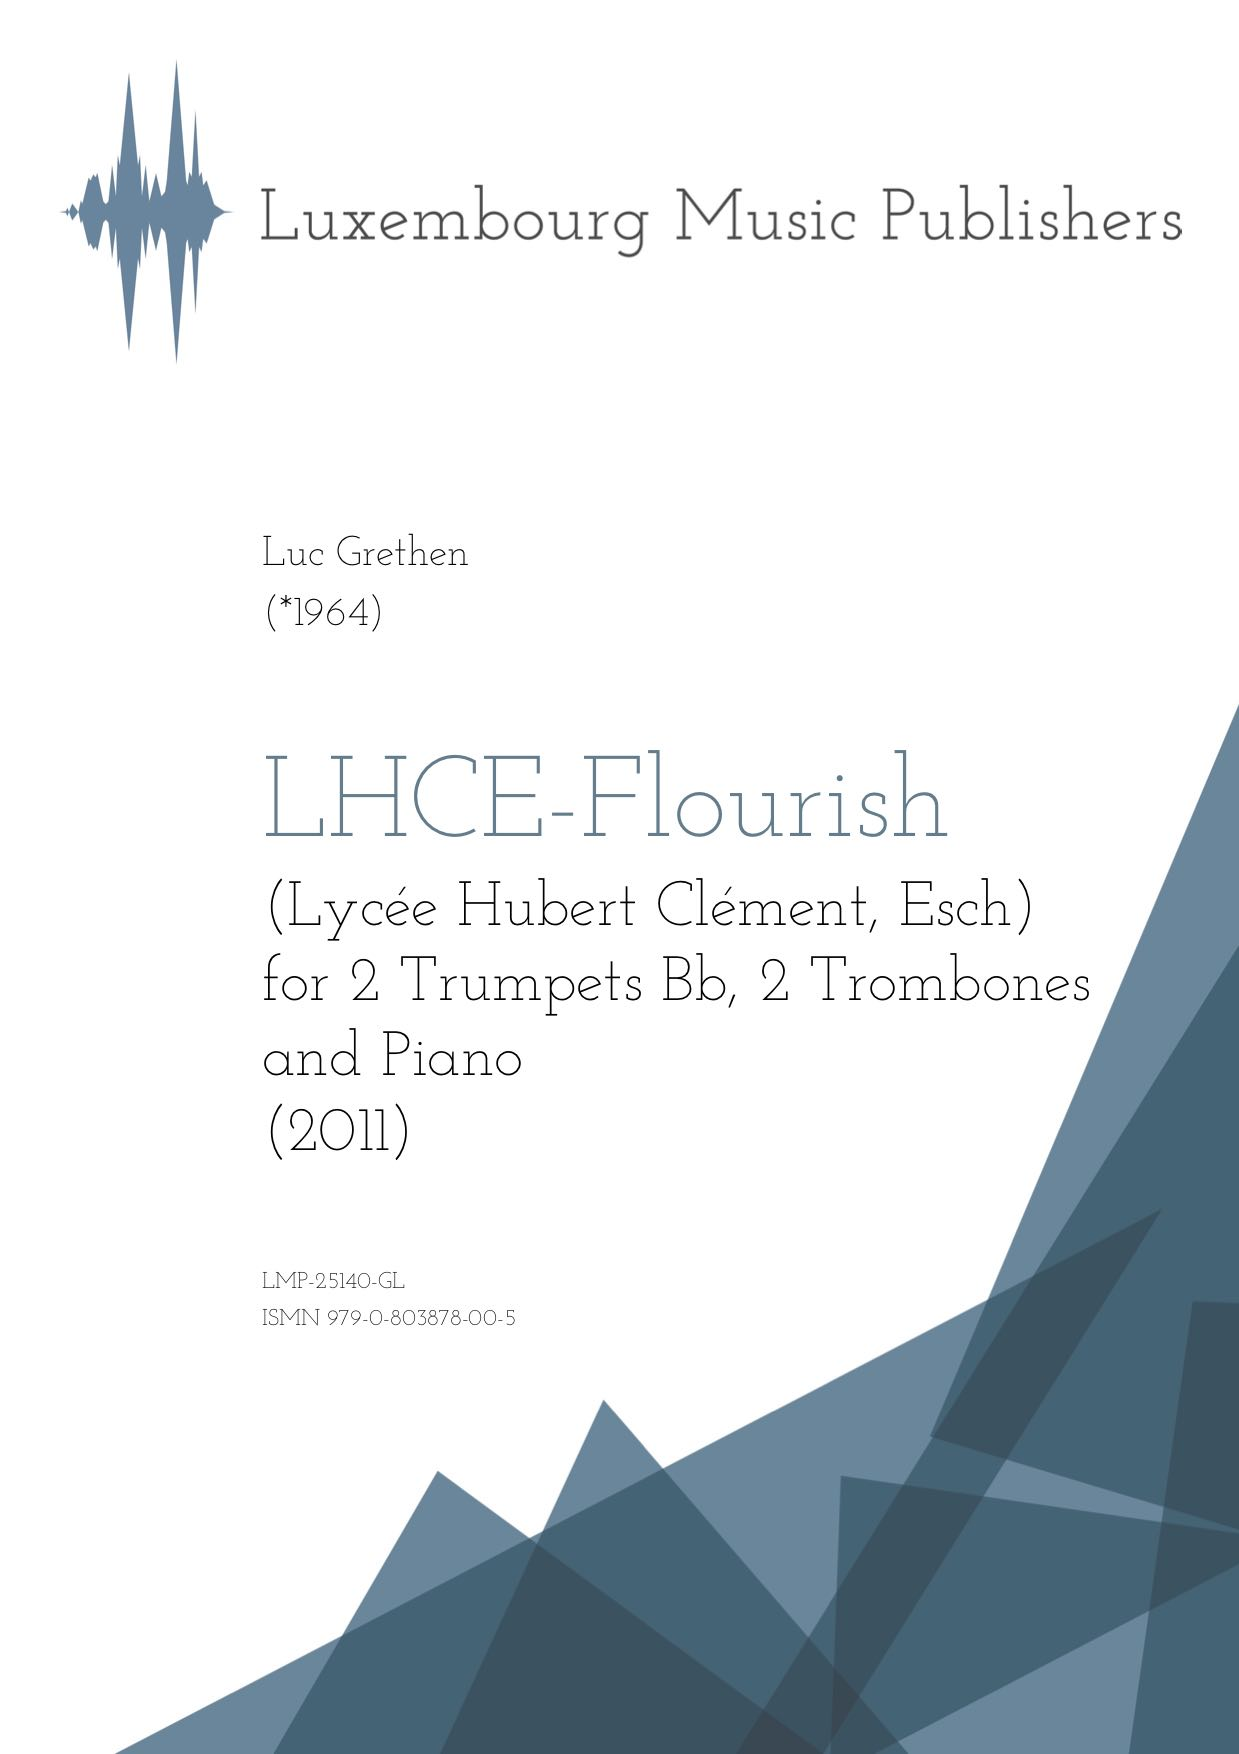 LHCE-Flourish. Sheet Music by Luc Grethen, composer. Piece for 2 Trumpets Bb, 2 Trombones and Piano. Festive Brass Music with Piano. Chamber Music for Brass ensemble and Piano. Trumpets with Piano. Trombones with Piano. Music for Brass and Piano.